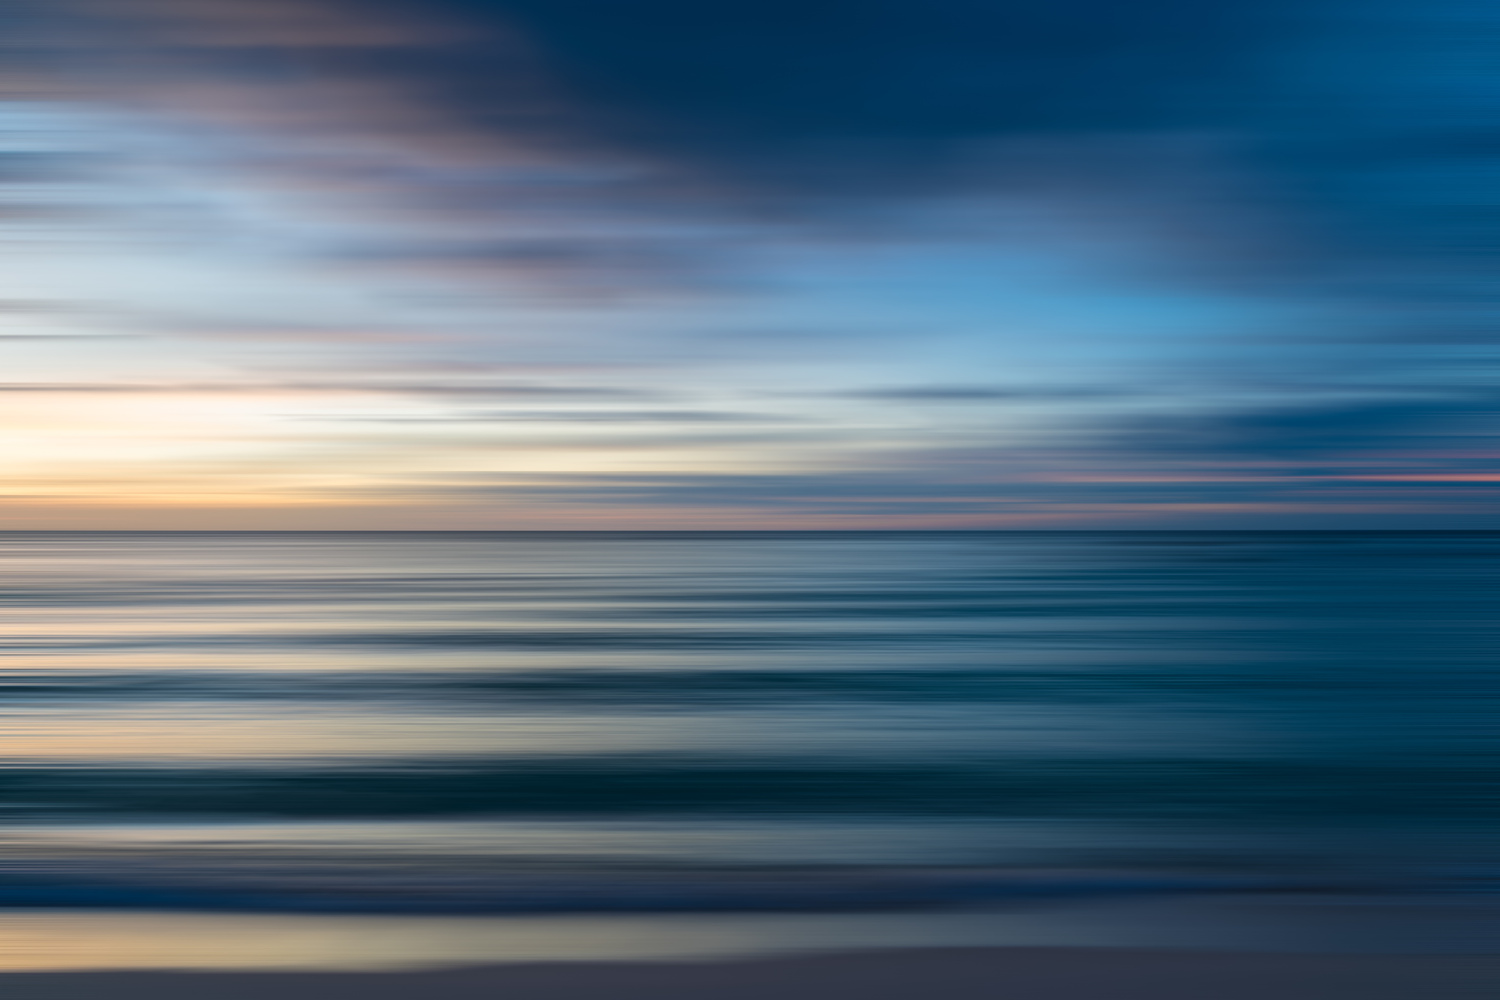 _______Sunset_______ by Markus Lang